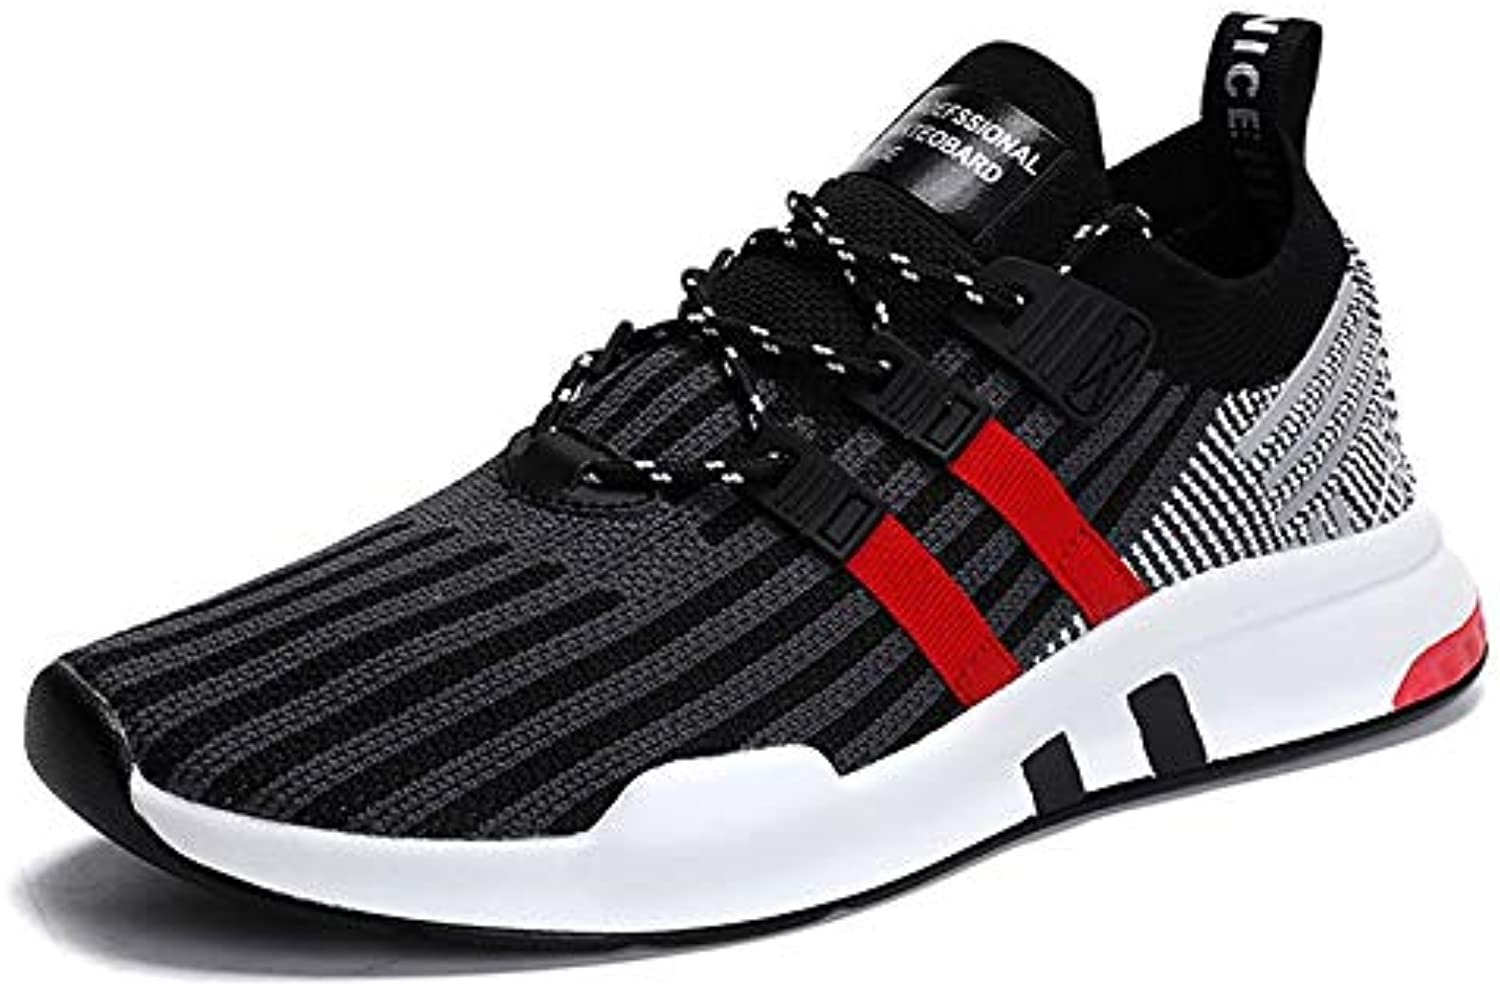 WDDGPZYDX Men Comfortable shoes Spring Autumn style sneaker Breathable Fashion Male Casual shoes3 color large size 39-46